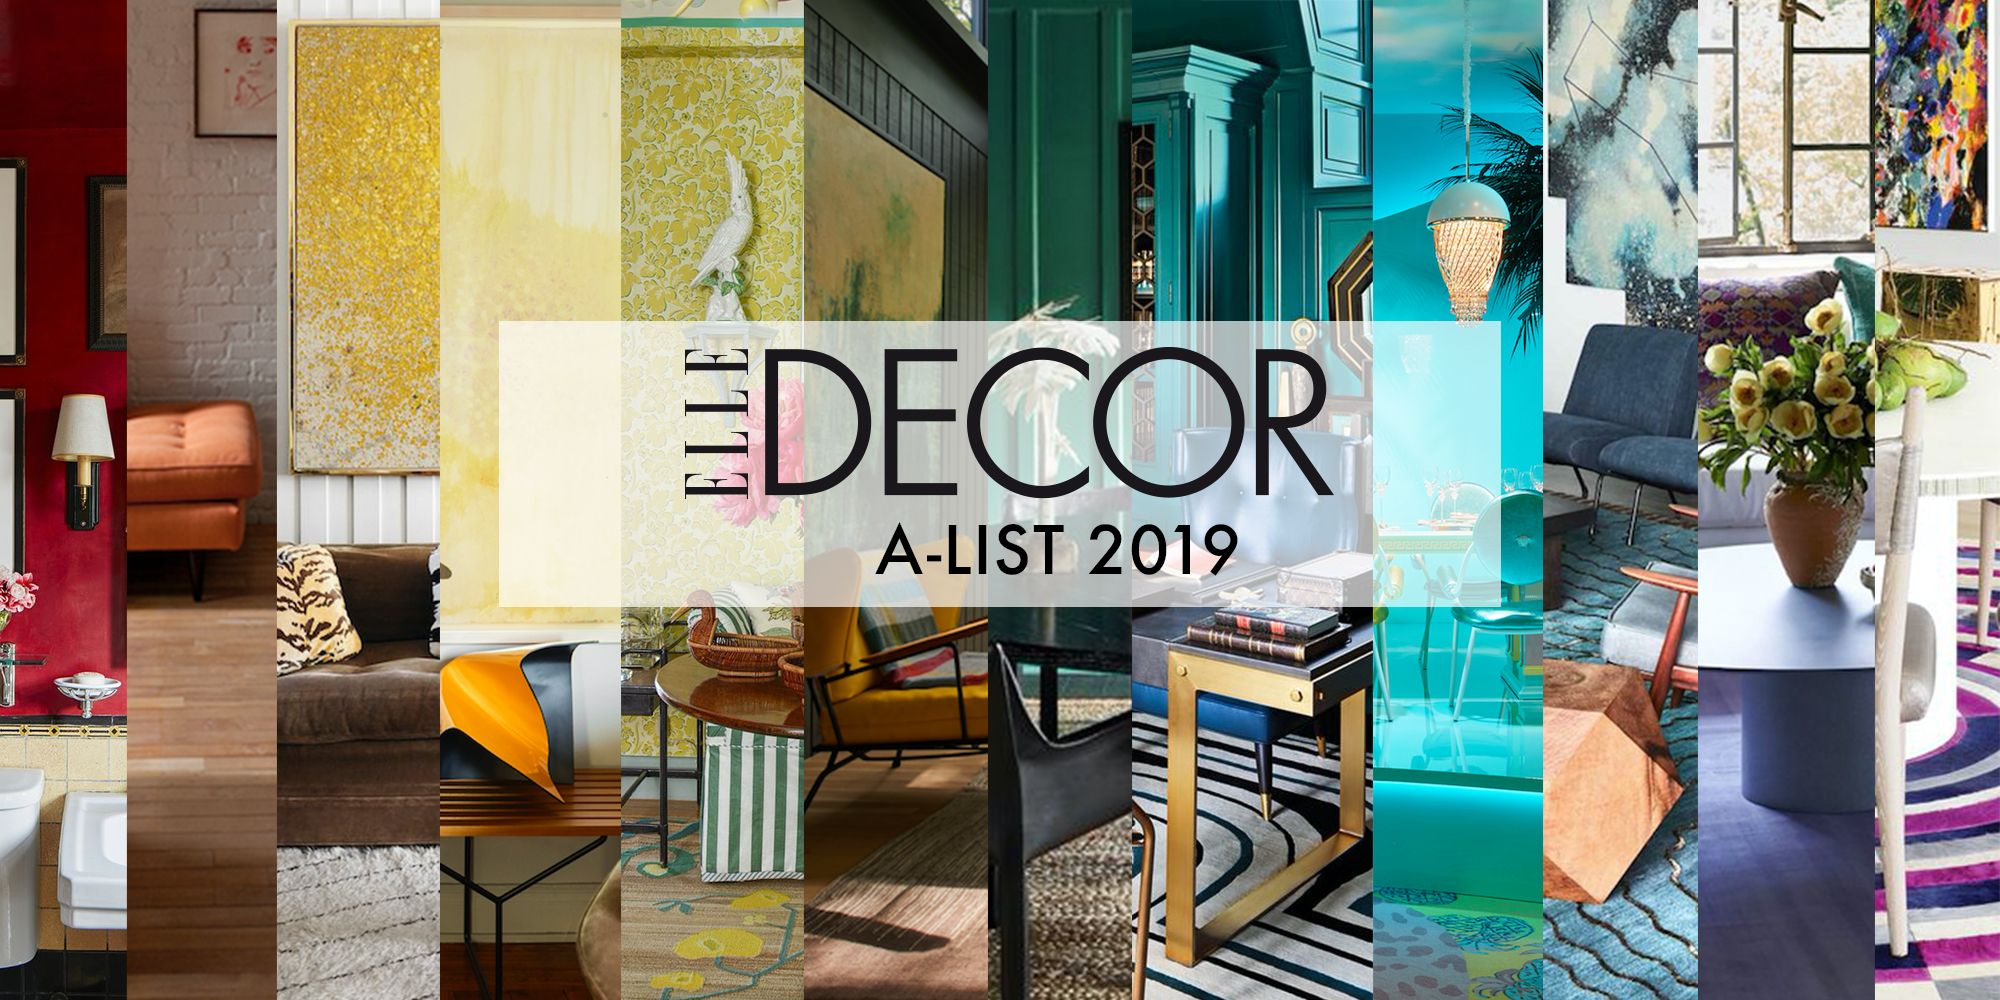 manhattan interior decorators interior design The 2019 A-List: 100+ of the Best Interior Designers From Milan to Miami